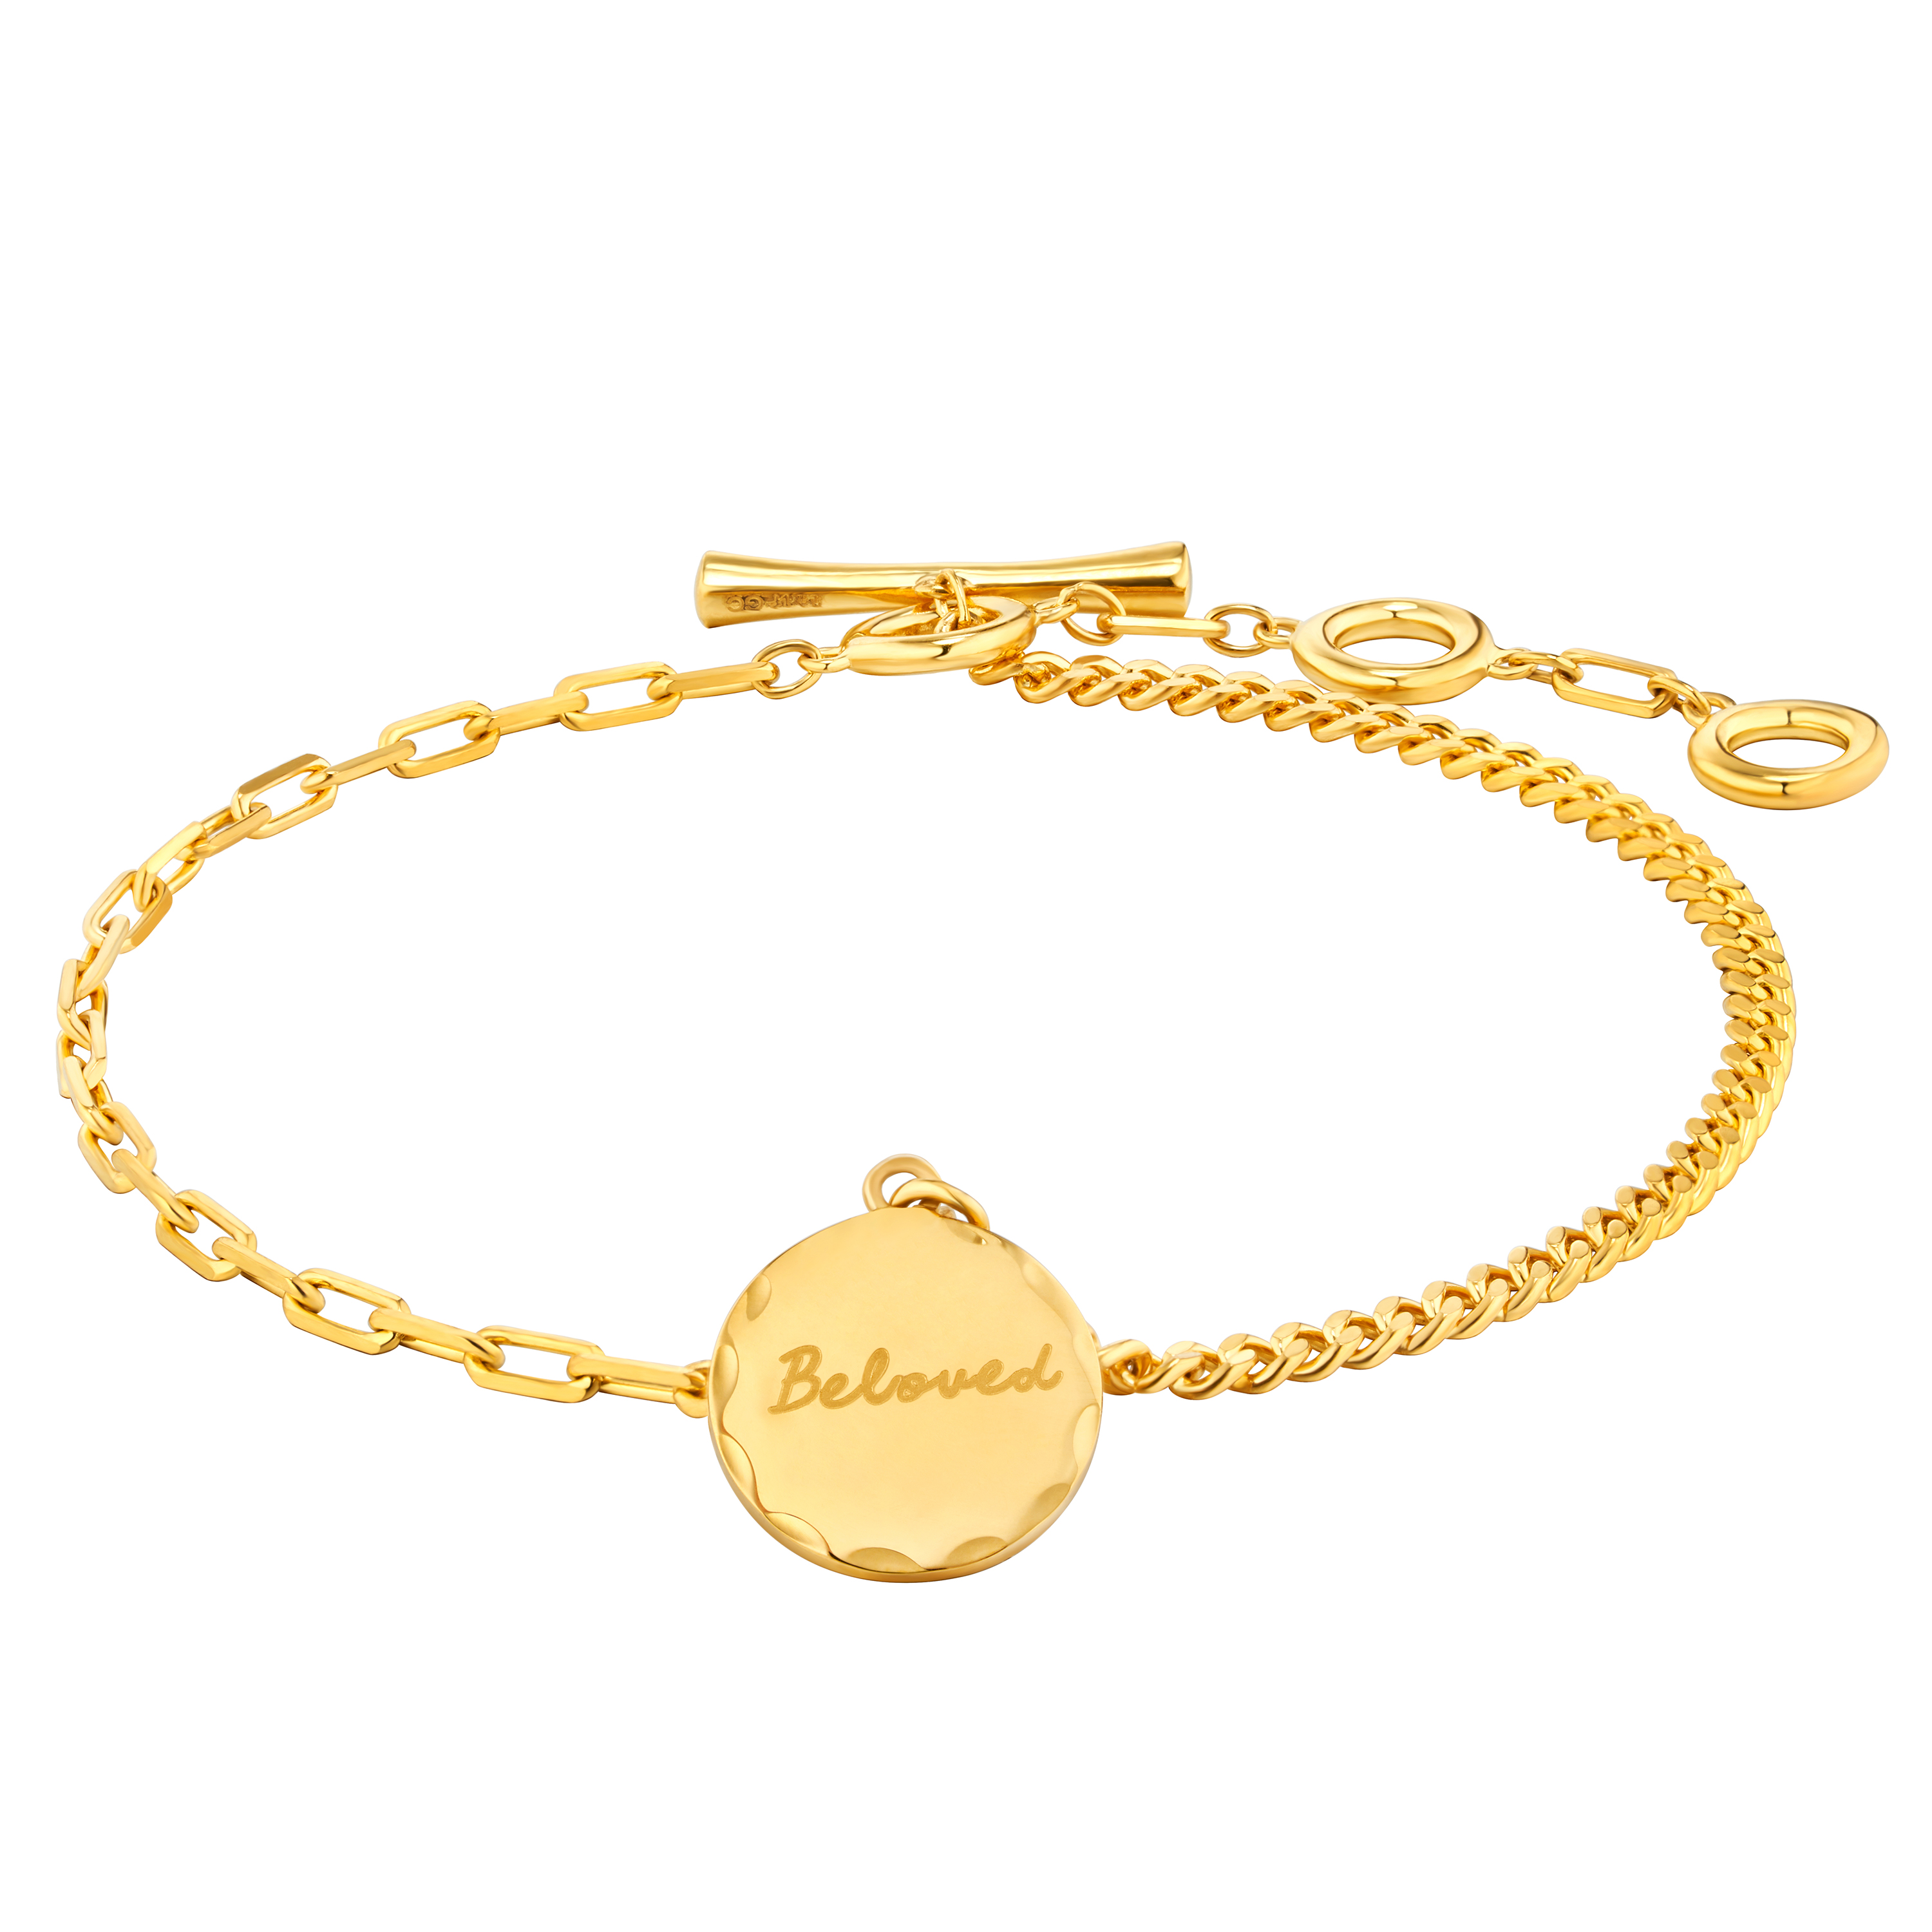 Gold of Light and Shadow Round-shaped Bracelet